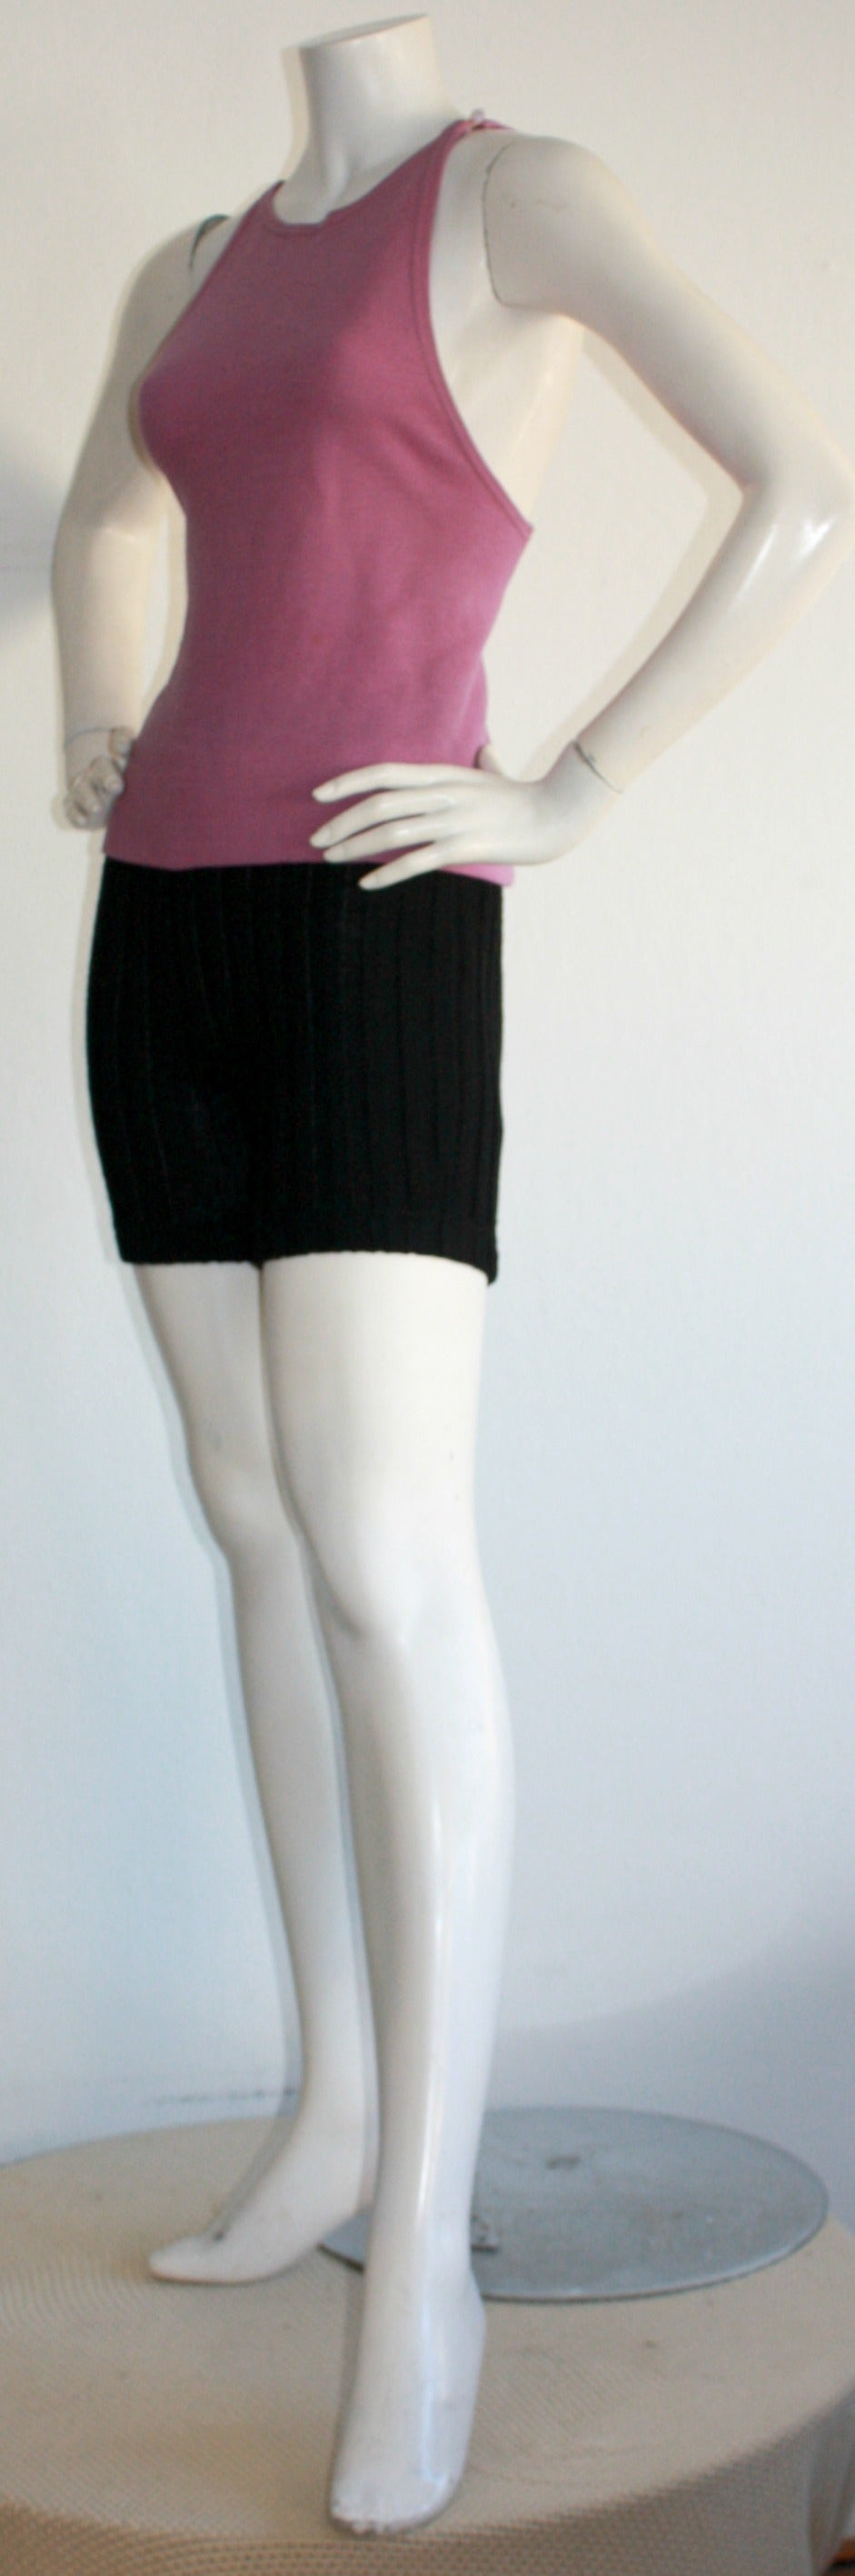 Iconic 1960s Rudi Gernreich For Harmon Knits Shorts and Top Ensemble 2